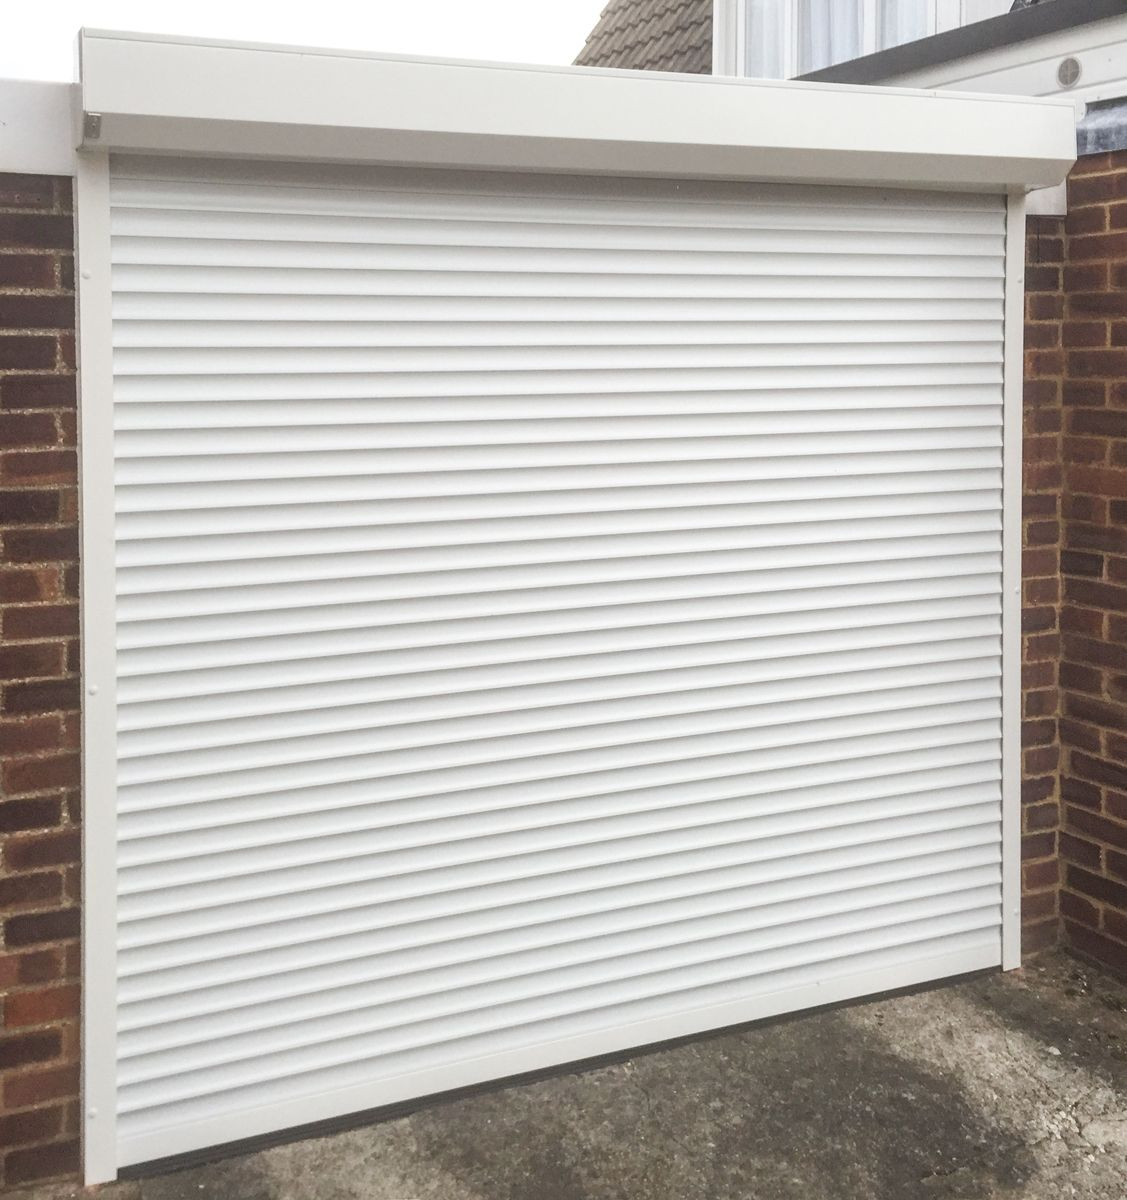 An SWS SeceuroGlide Roller Garage Door finished in White